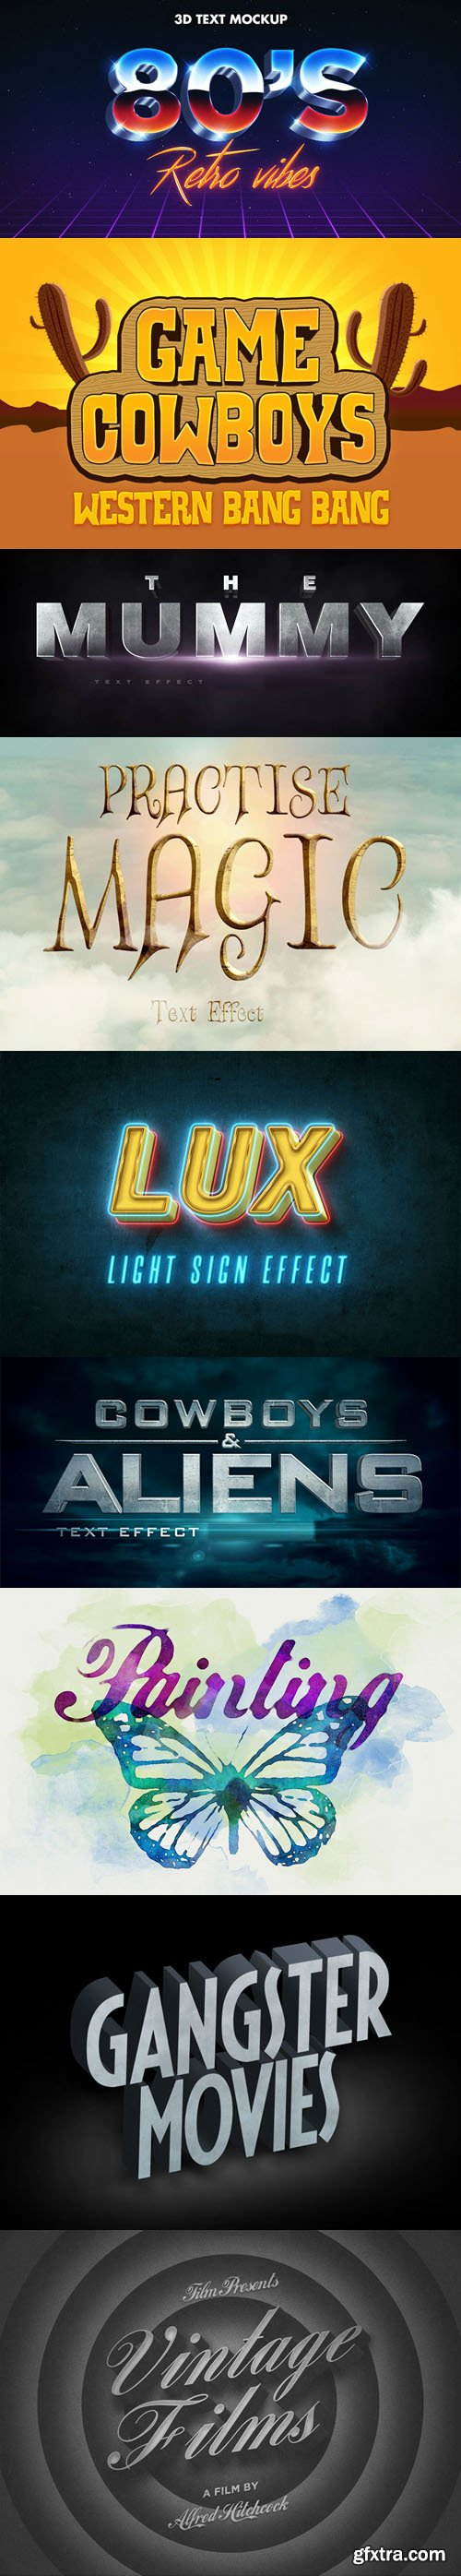 9 Awesome Photoshop Text Effects